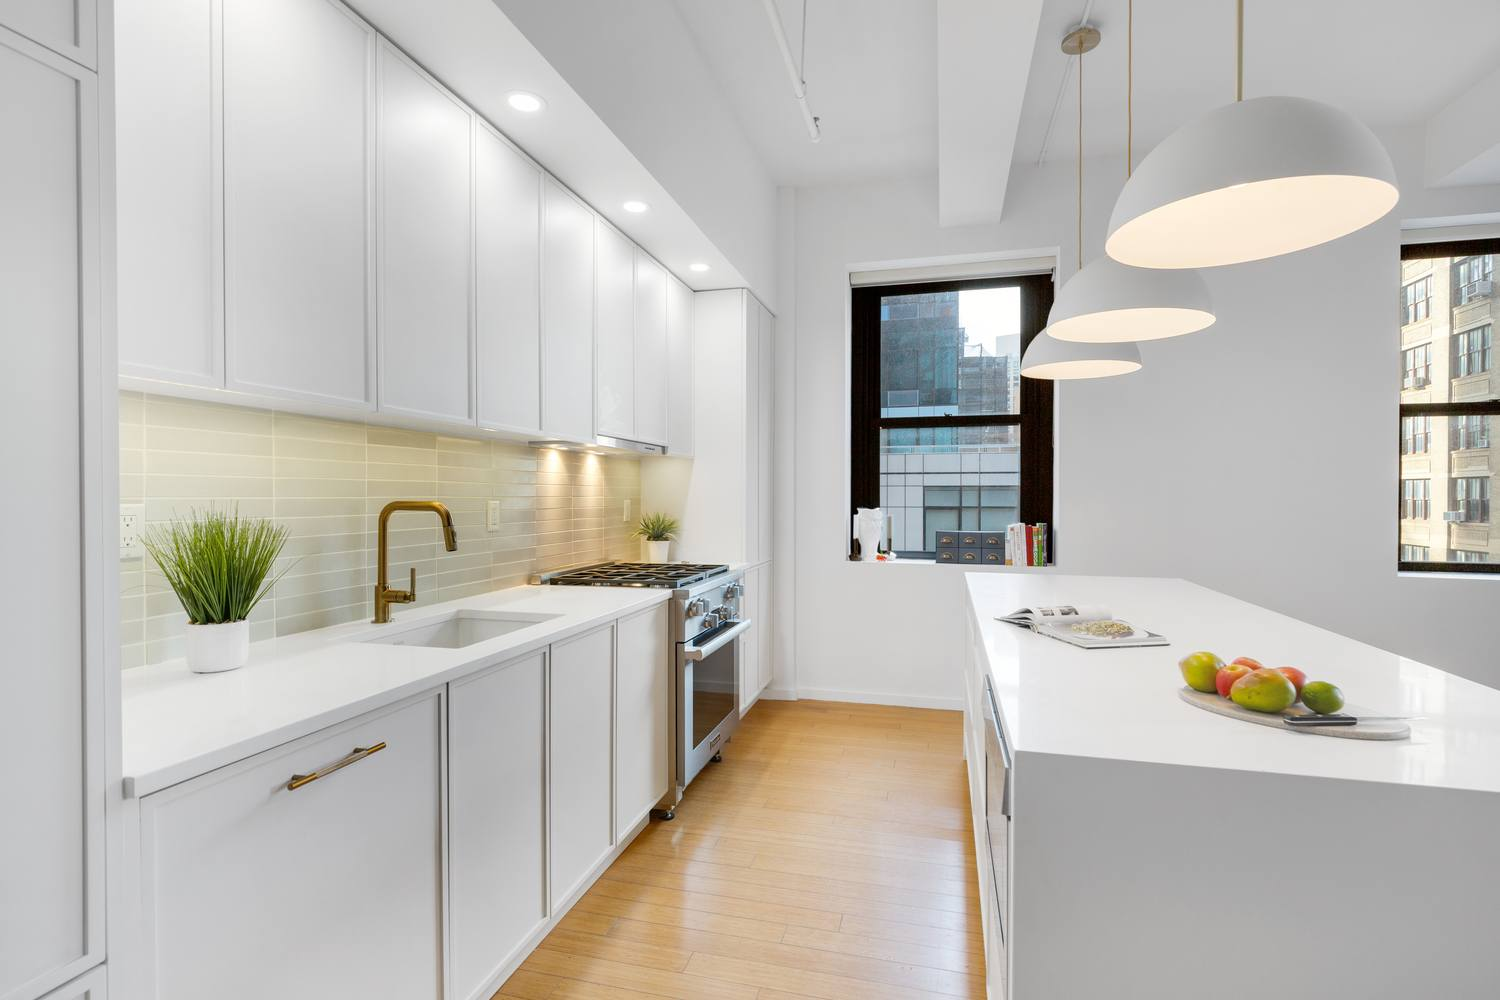 Nyc Condo Renovation Tips To Keep Your Project Running Smoothly Gallery Kitchen And Bath